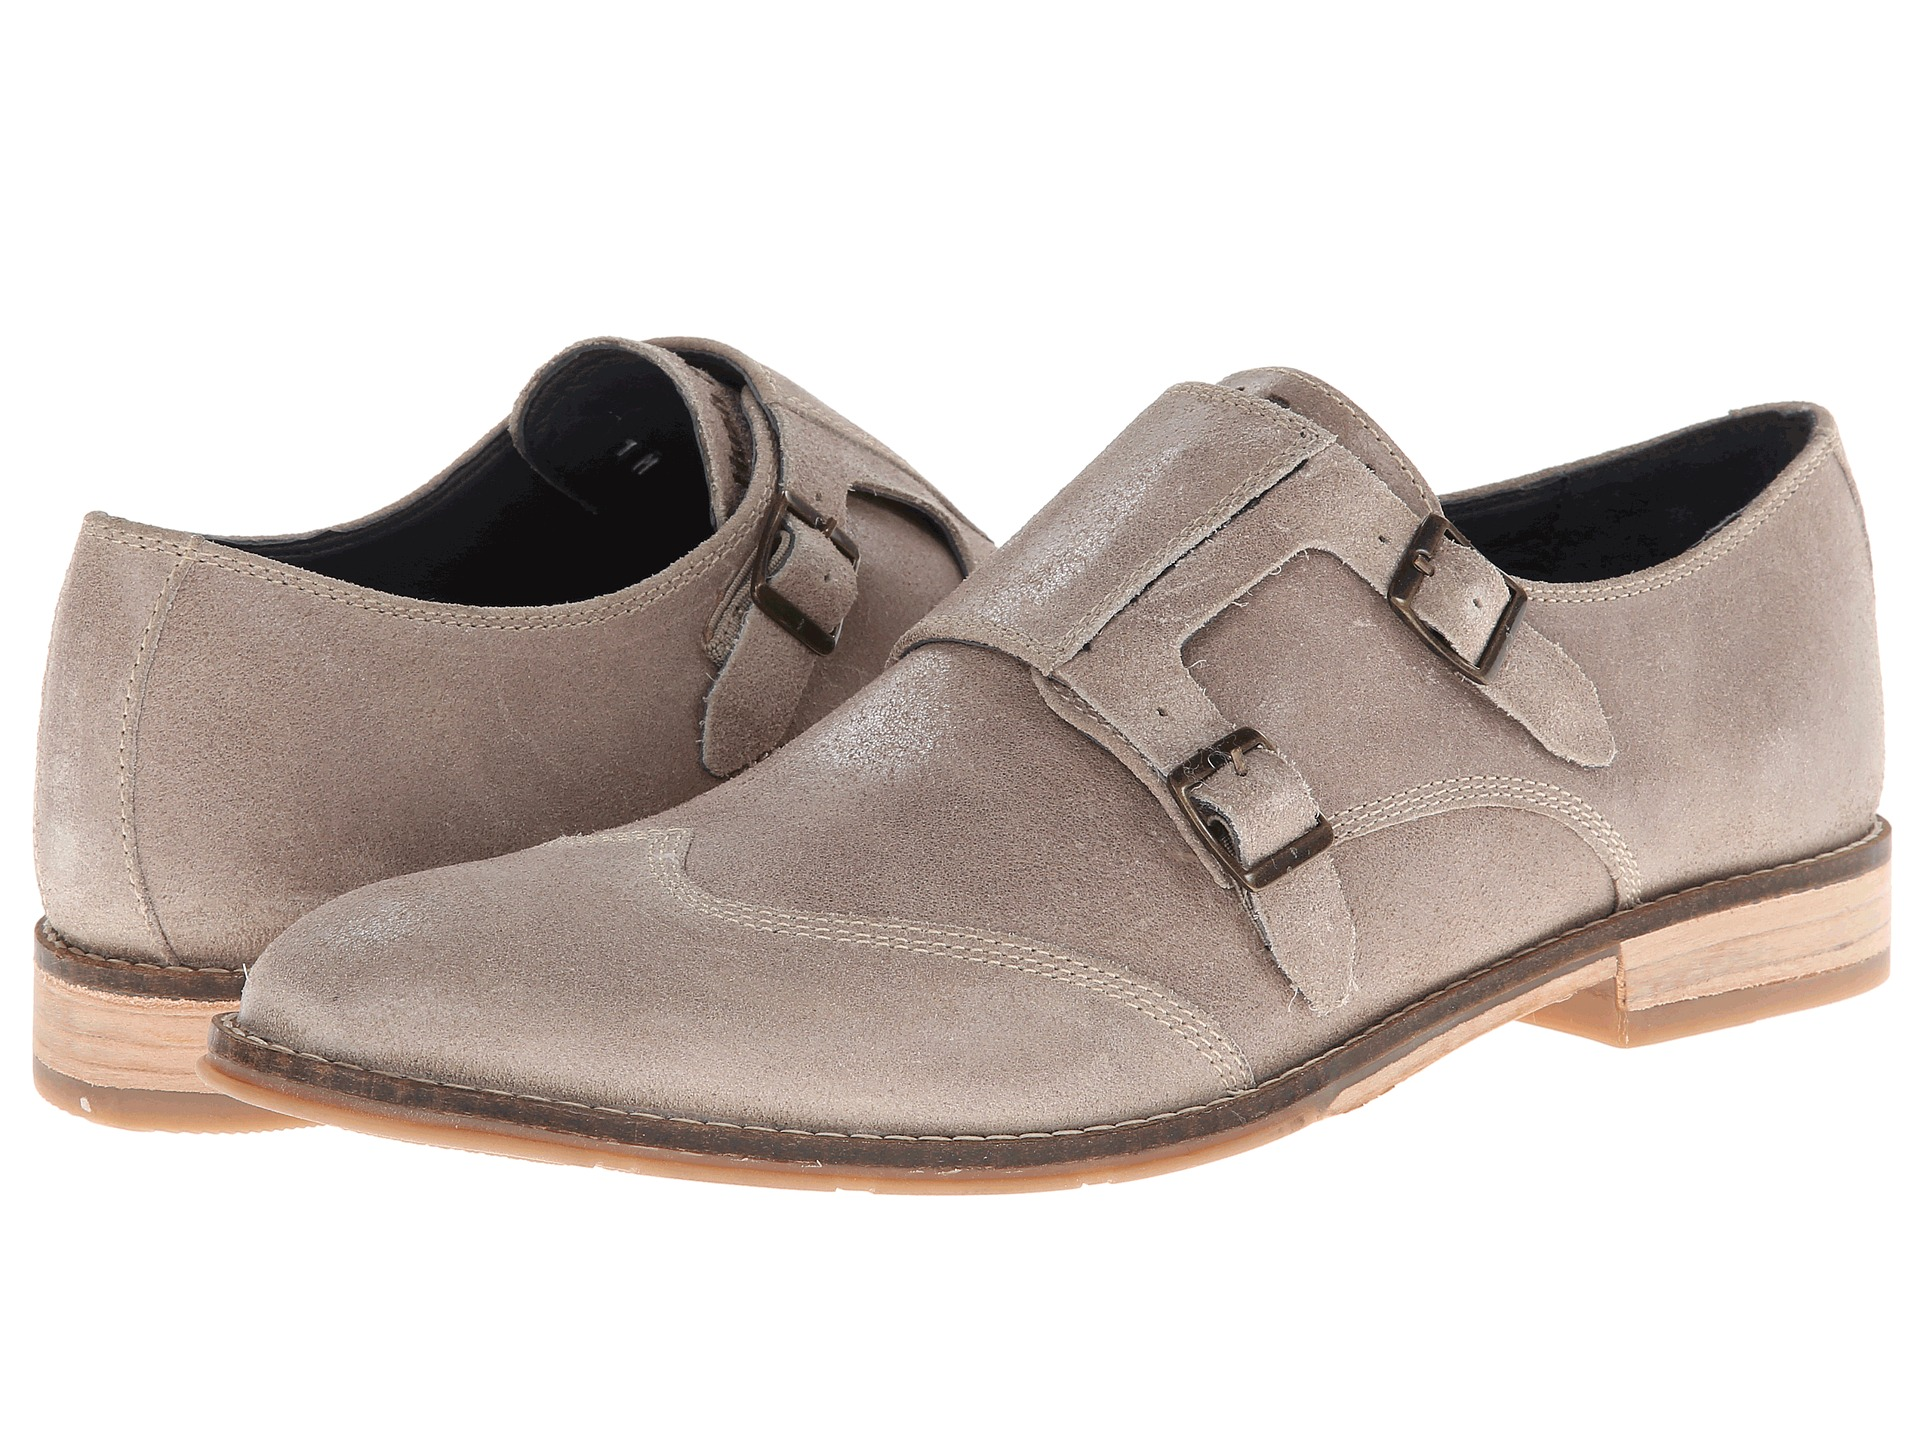 Zappos Mens Wide Dress Shoes